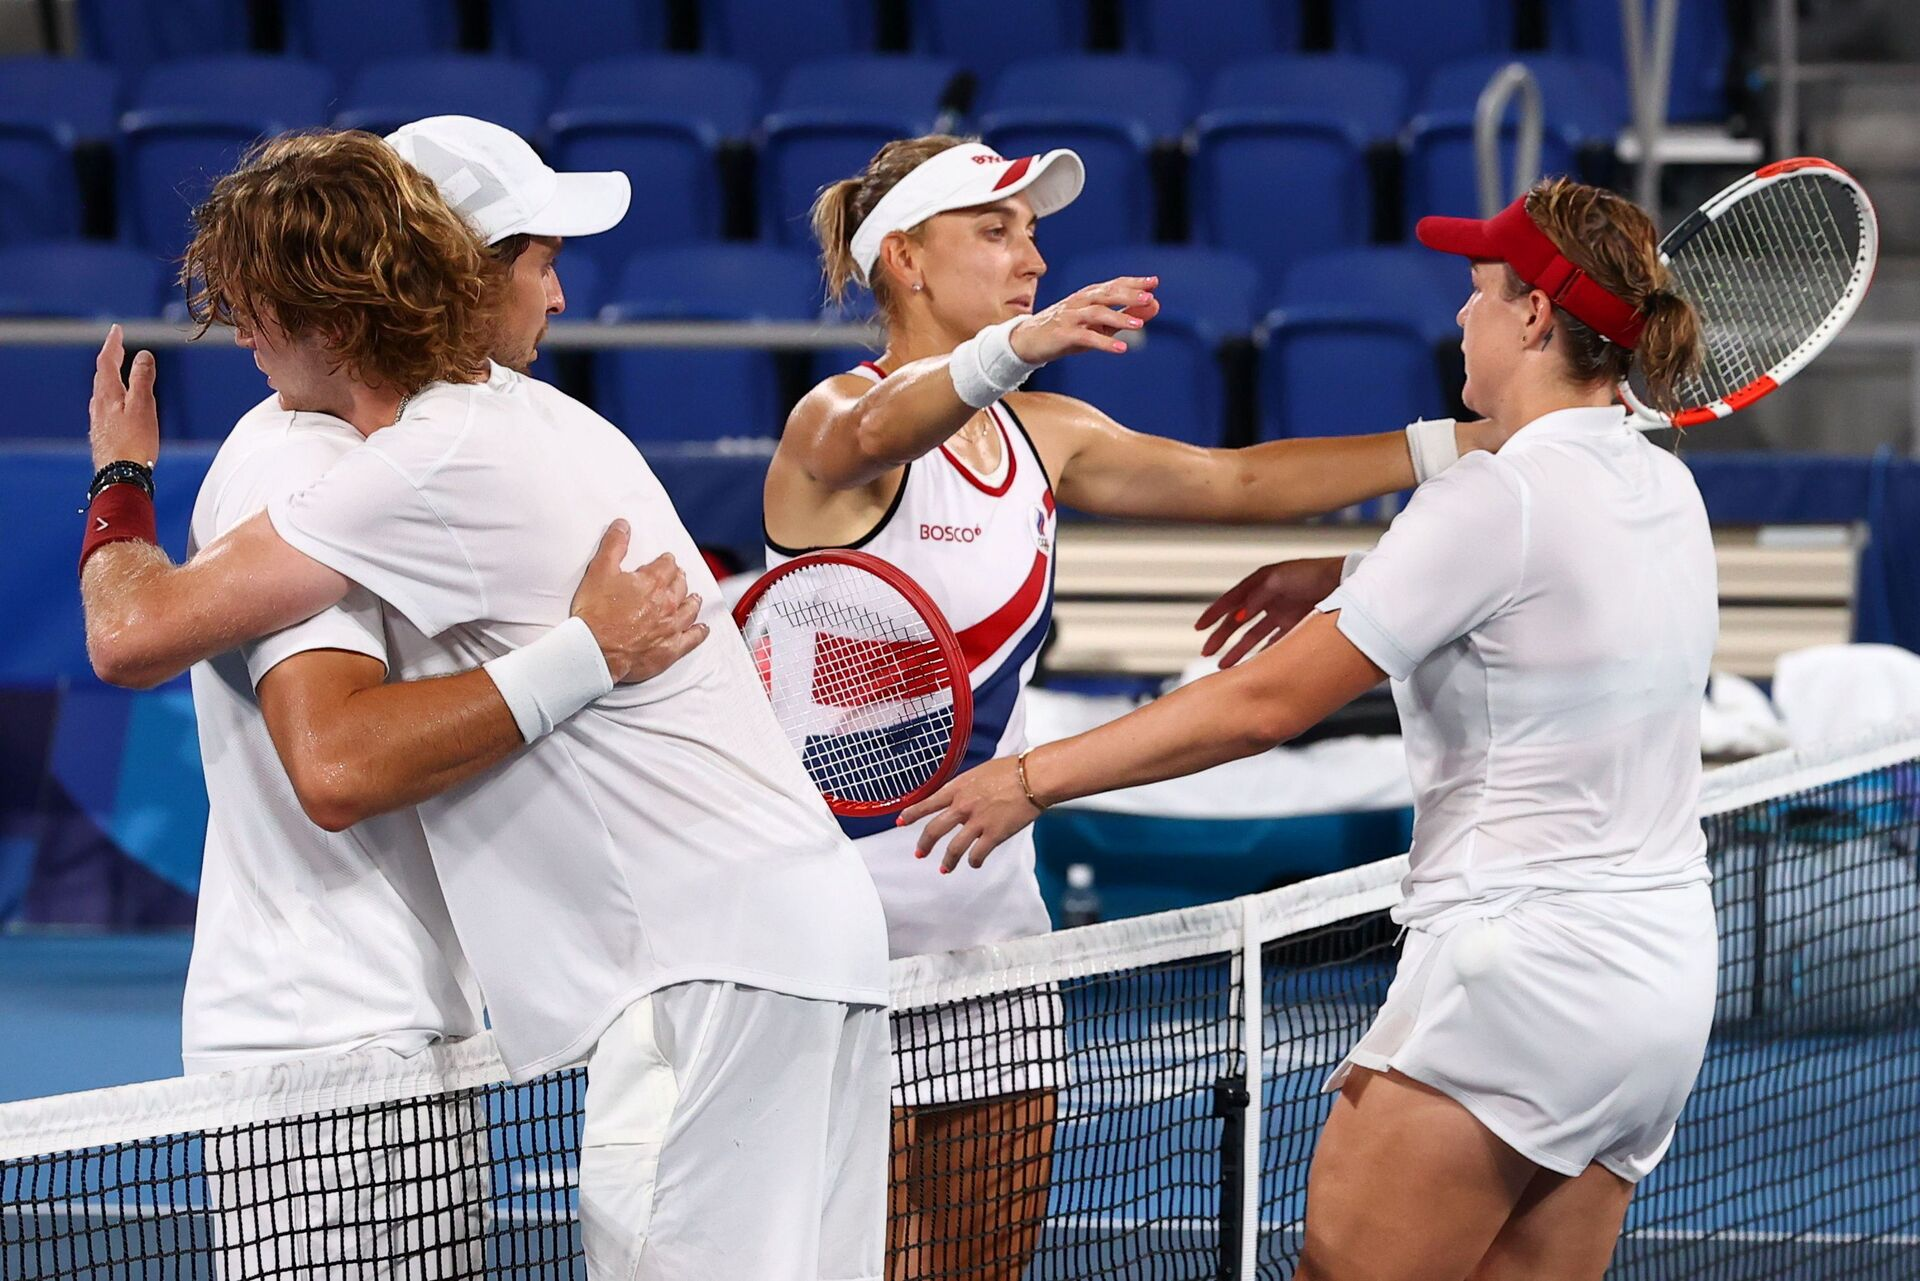 Tokyo 2020 Olympics - Tennis - Mixed Doubles - Gold medal match - Ariake Tennis Park - Tokyo, Japan - August 1, 2021. Anastasia Pavlyuchenkova and Andrey Rublev of the Russian Olympic Committee with Elena Vesnina and Aslan Karatsev of the Russian Olympic Committee after winning their gold medal match REUTERS/Edgar Su - Sputnik International, 1920, 07.09.2021